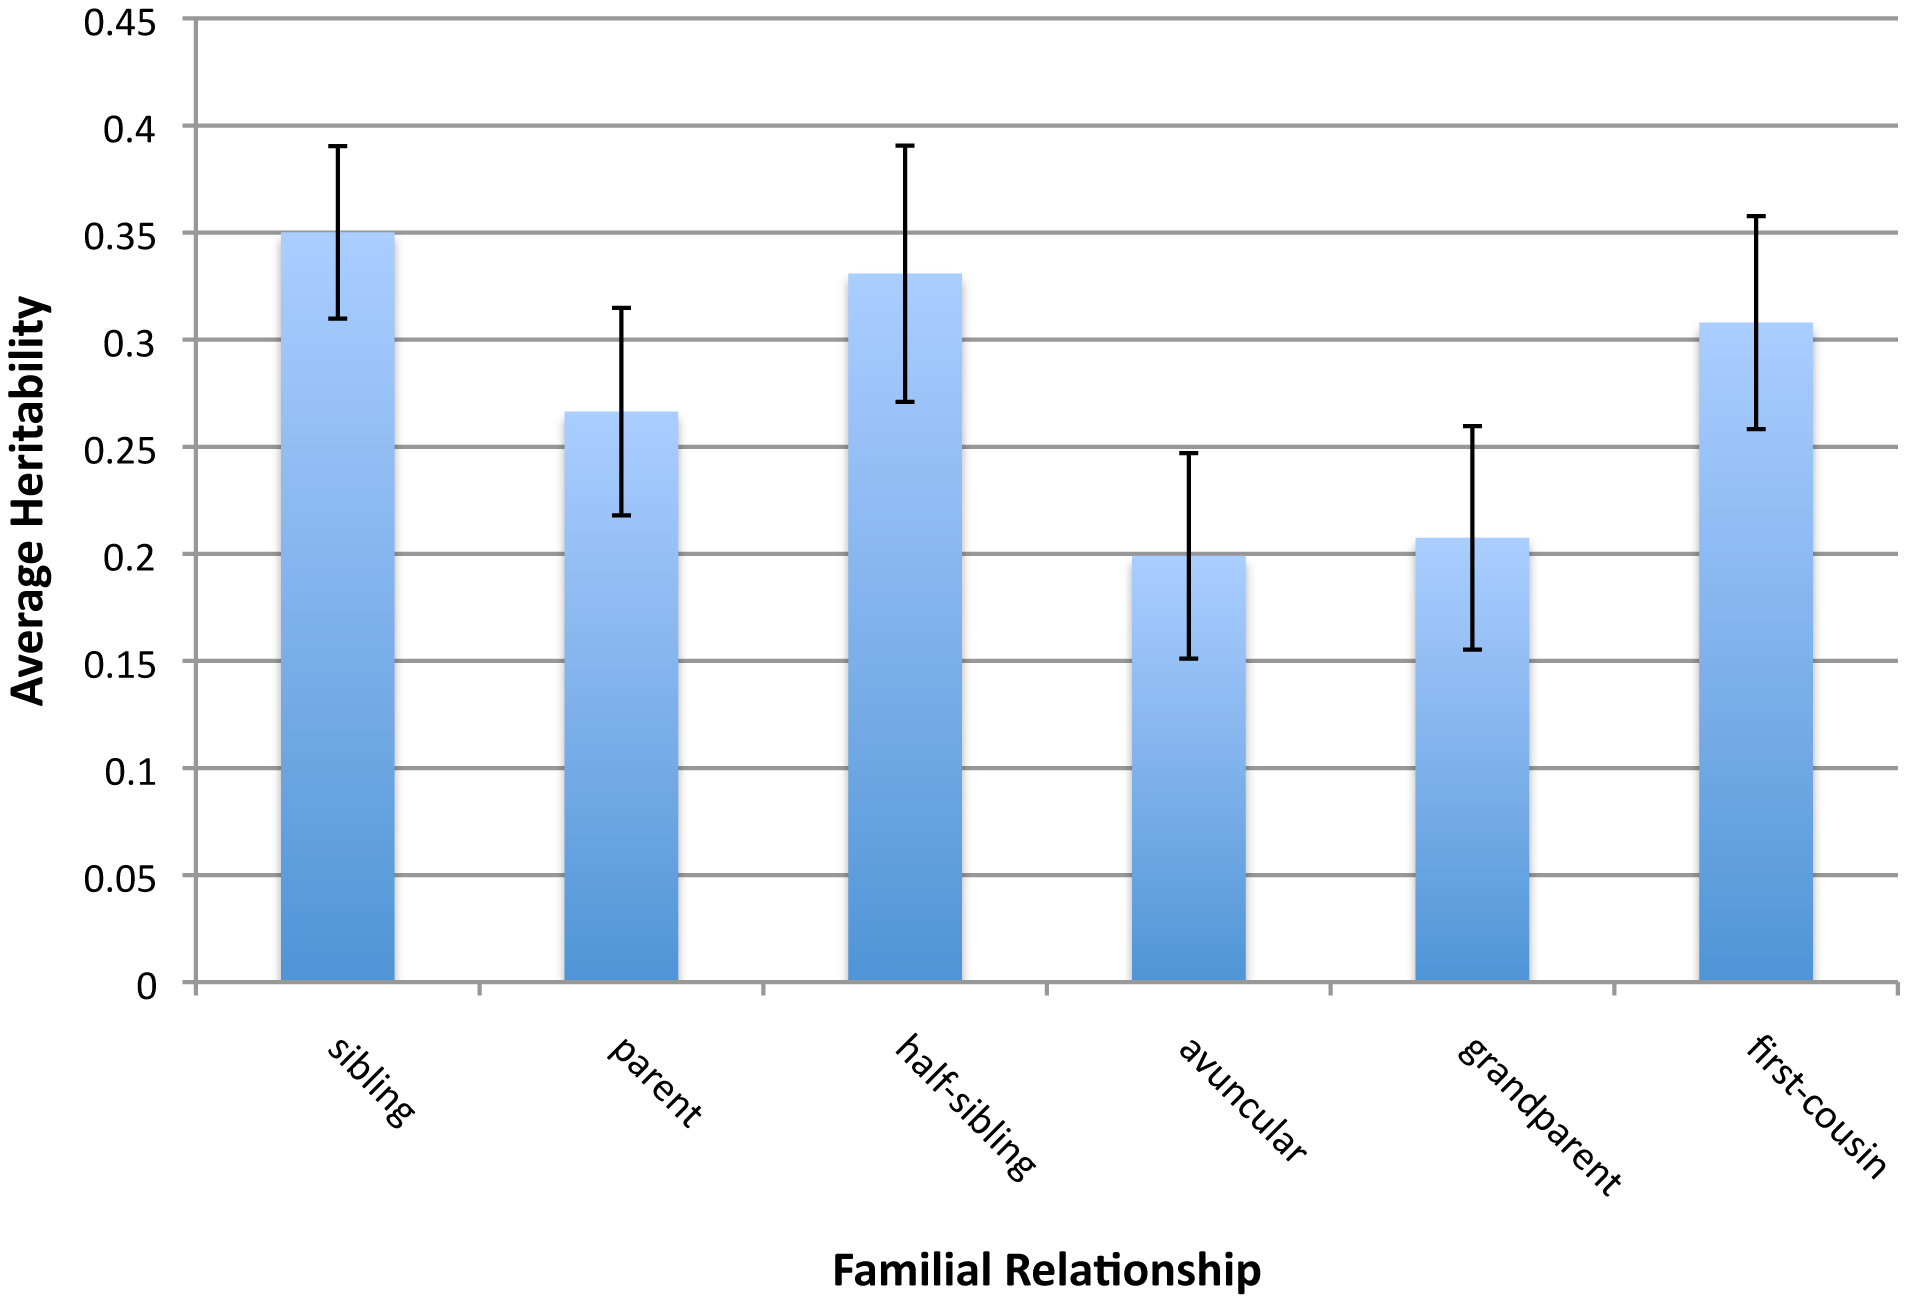 Average heritability estimates and 95% confidence intervals of 17 phenotypes for six classes of relationship.